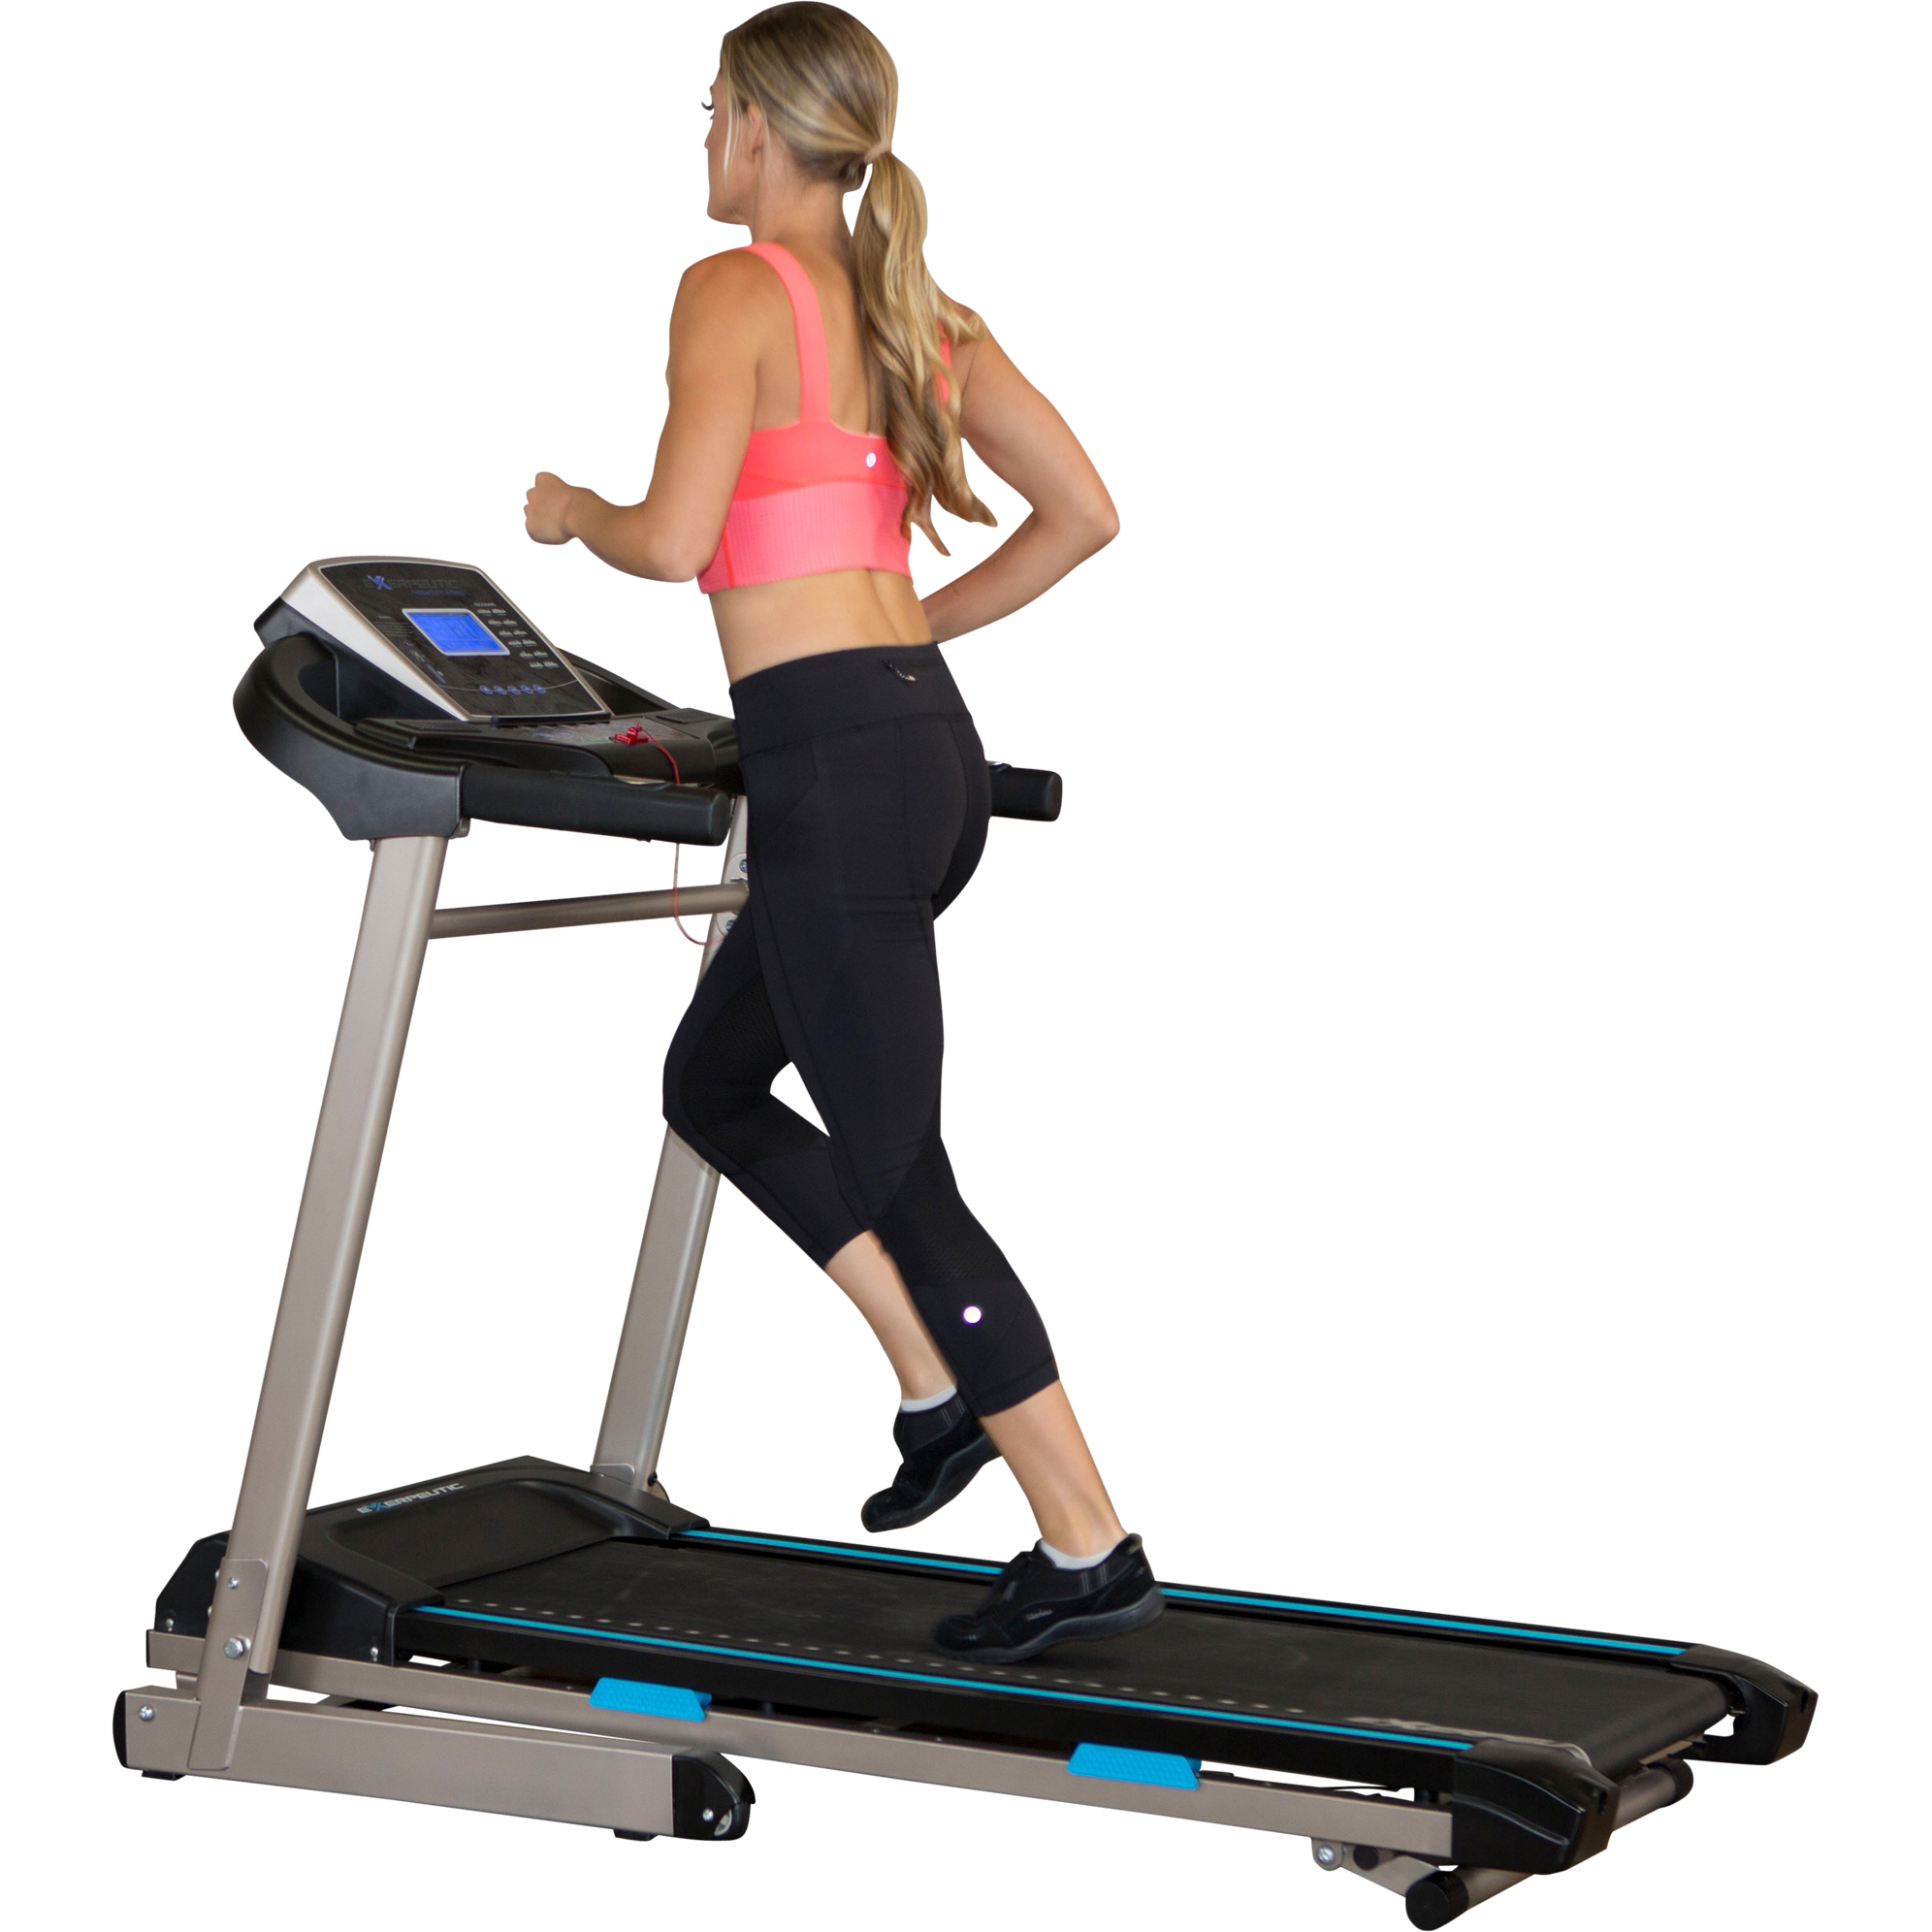 EXERPEUTIC TF3000 Bluetooth Smart Technology Electric Foldable Treadmill with Free App and Extended Belt Size